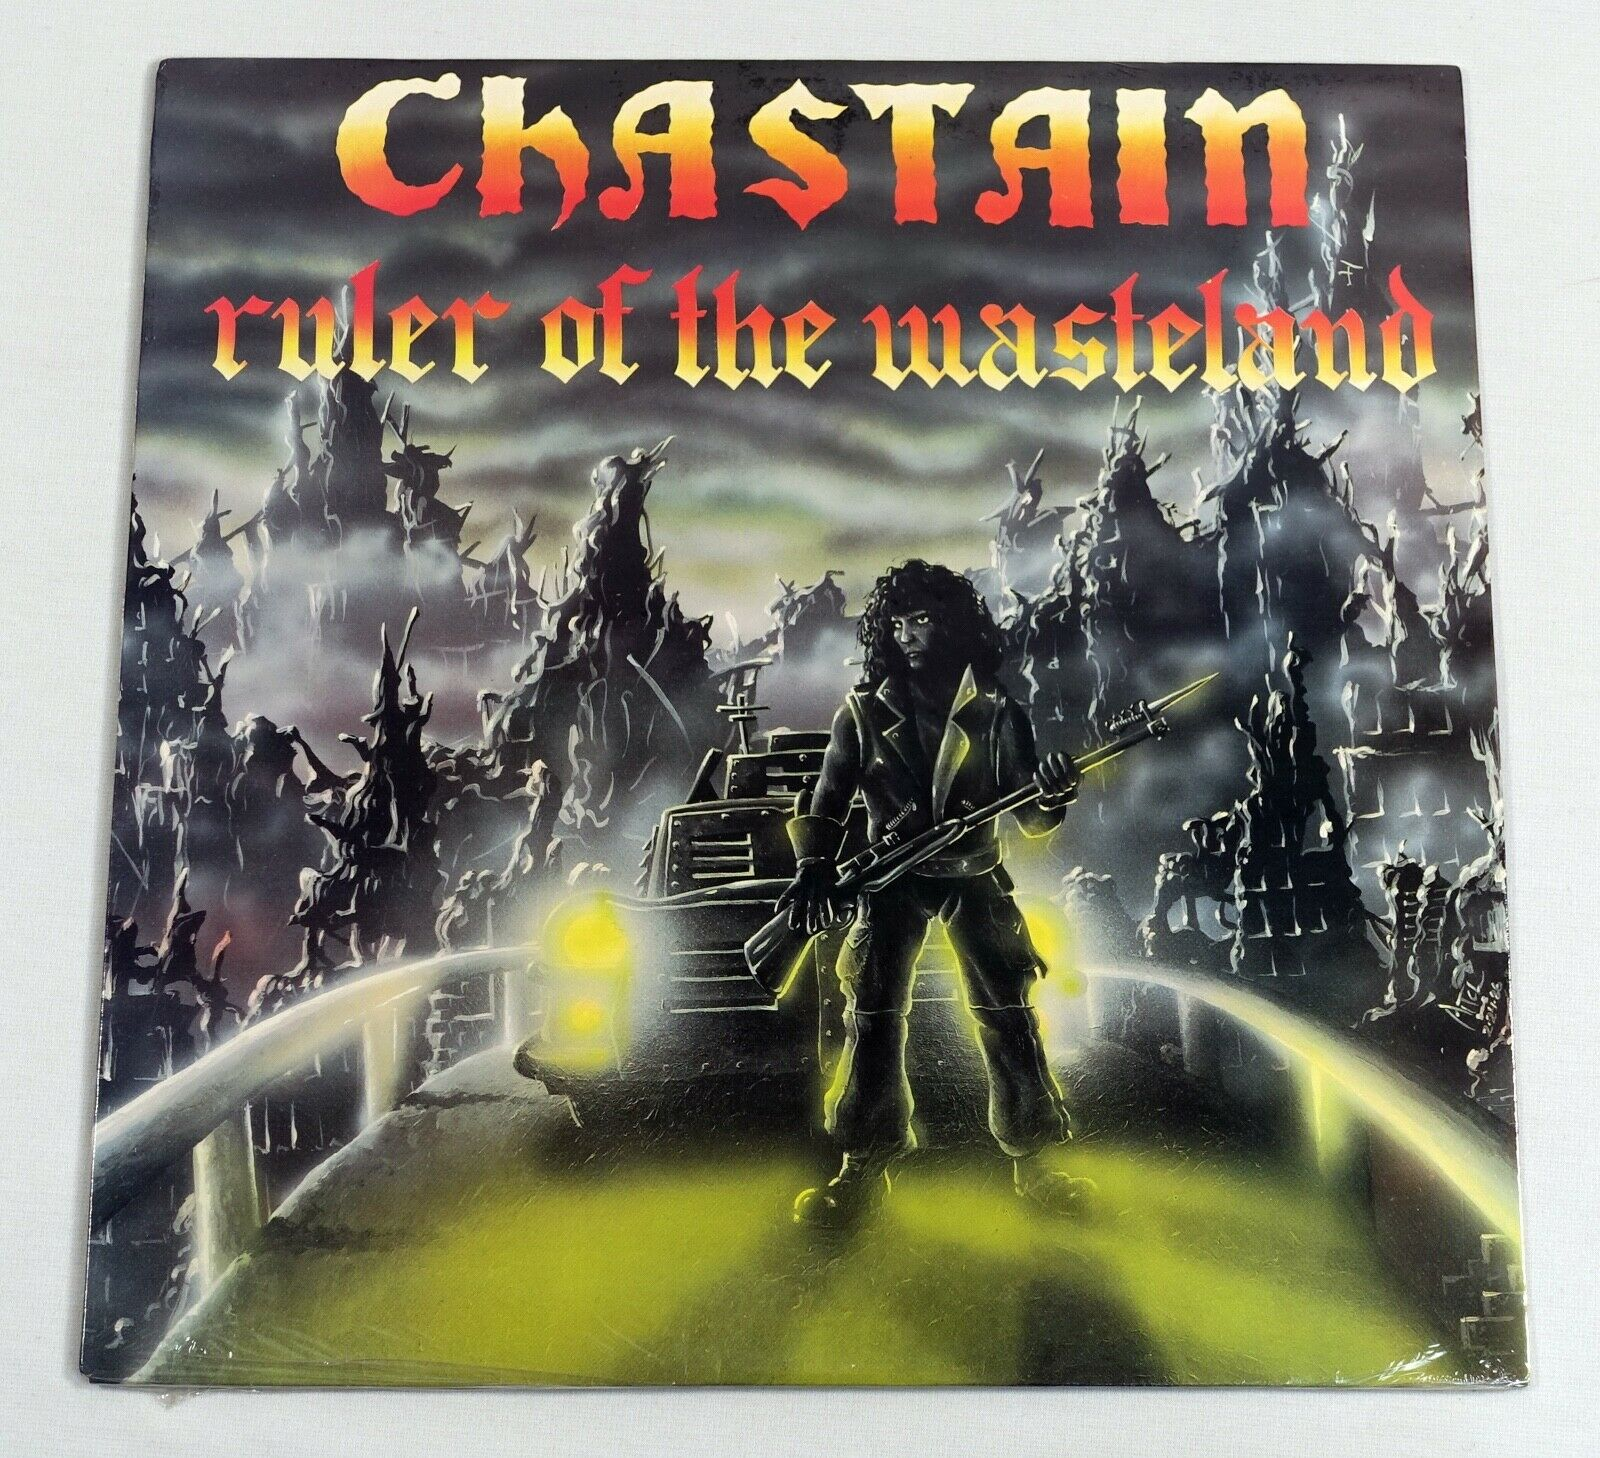 Chastain - Ruler of the Wasteland LP  Shrapnel SH-1024 Sealed In Shrink Wrap NEW